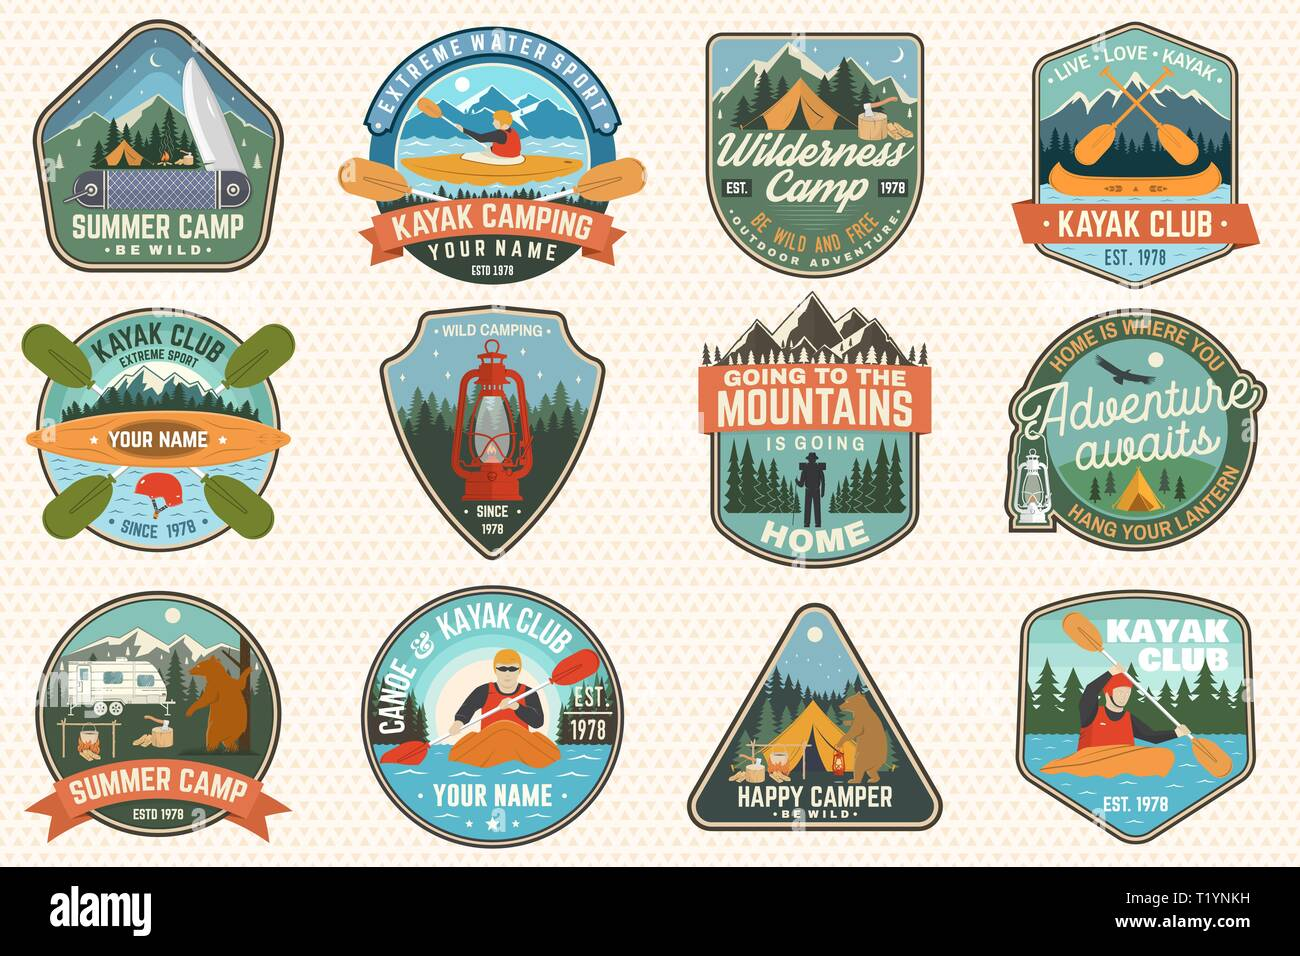 Set of summer camp, canoe and kayak club badges. Vector. For patch, stamp. Design with camping, mountain, lantern, tent, axe, mountain, campfire and kayaker. Extreme camp and water sport kayak patches - Stock Image